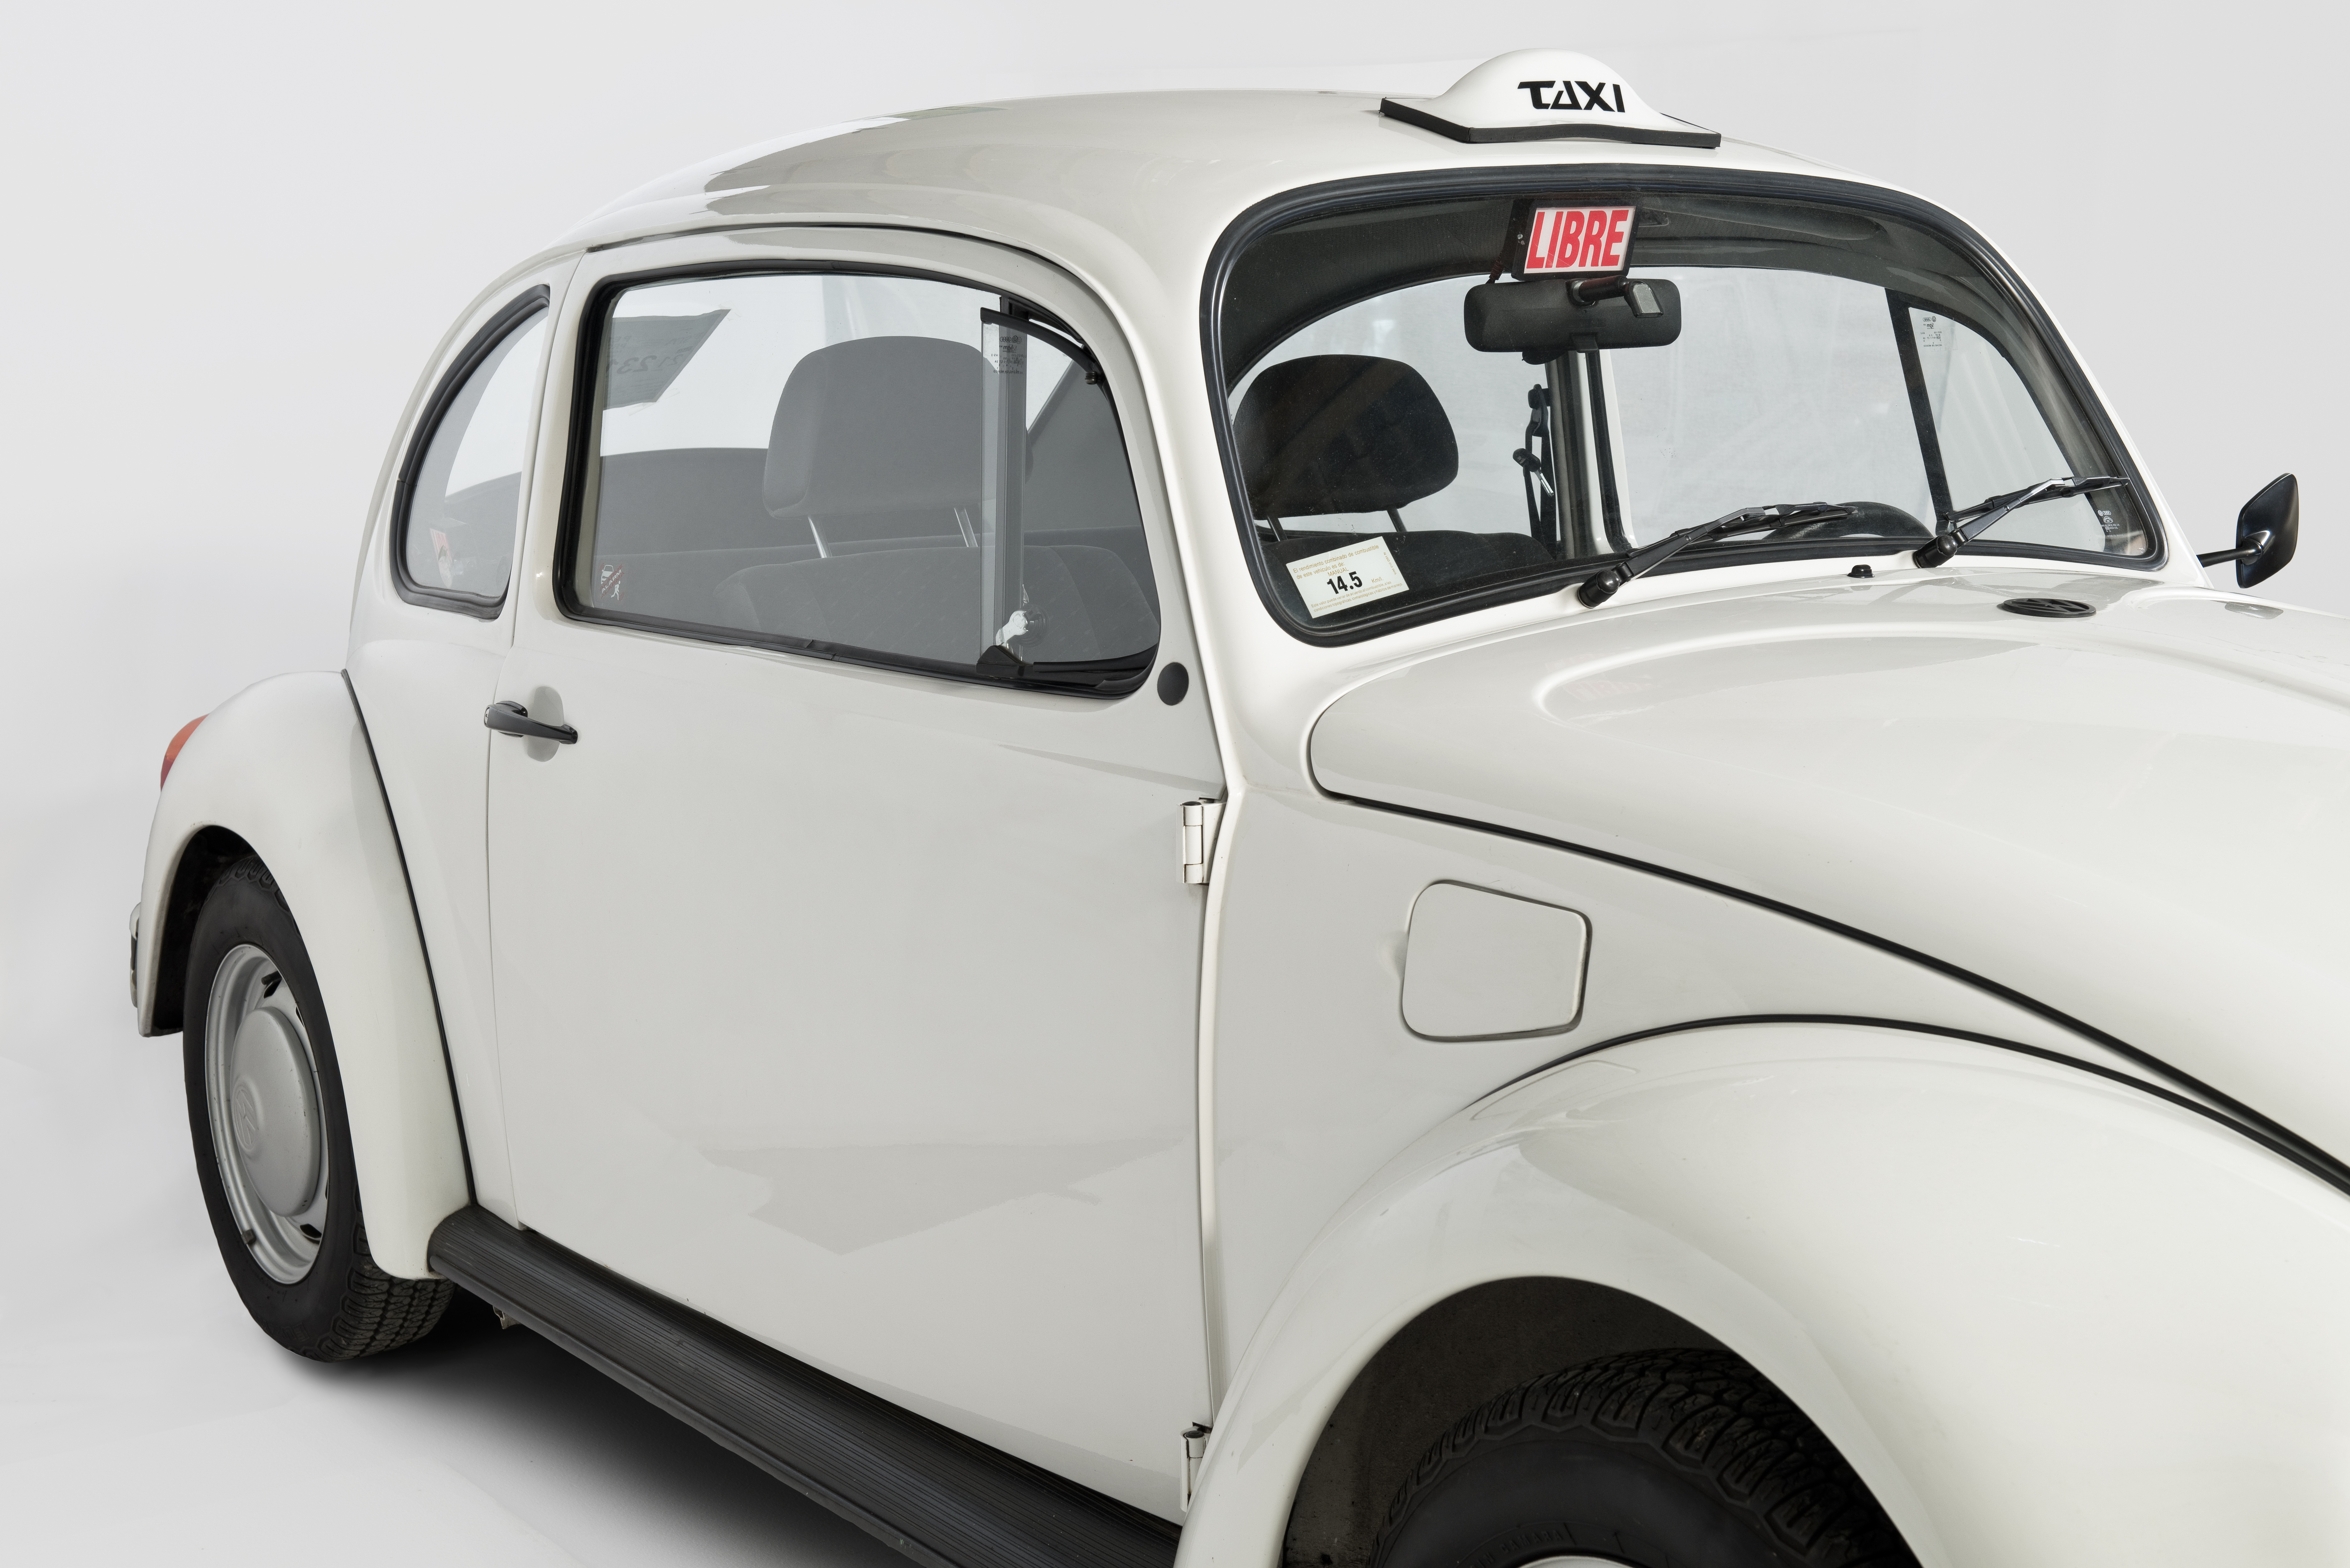 File Vw Beetle Taxi Prototype 03 Jpg